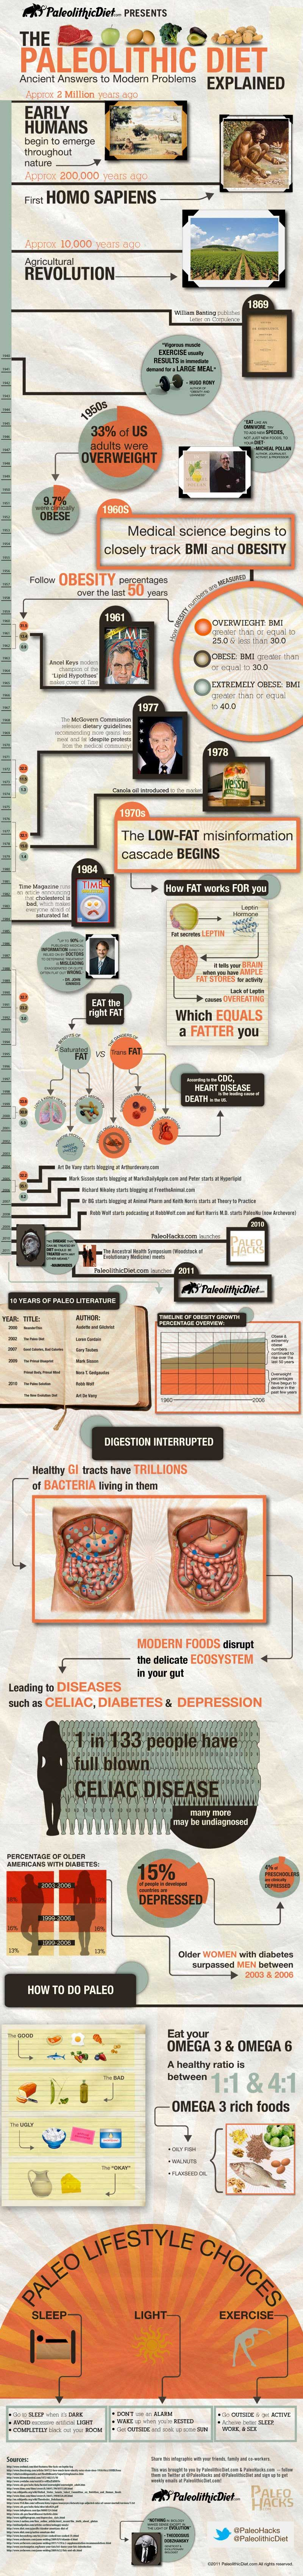 The Paleolithic diet explained (I don't believe in evolution but the rest of this is good stuff)